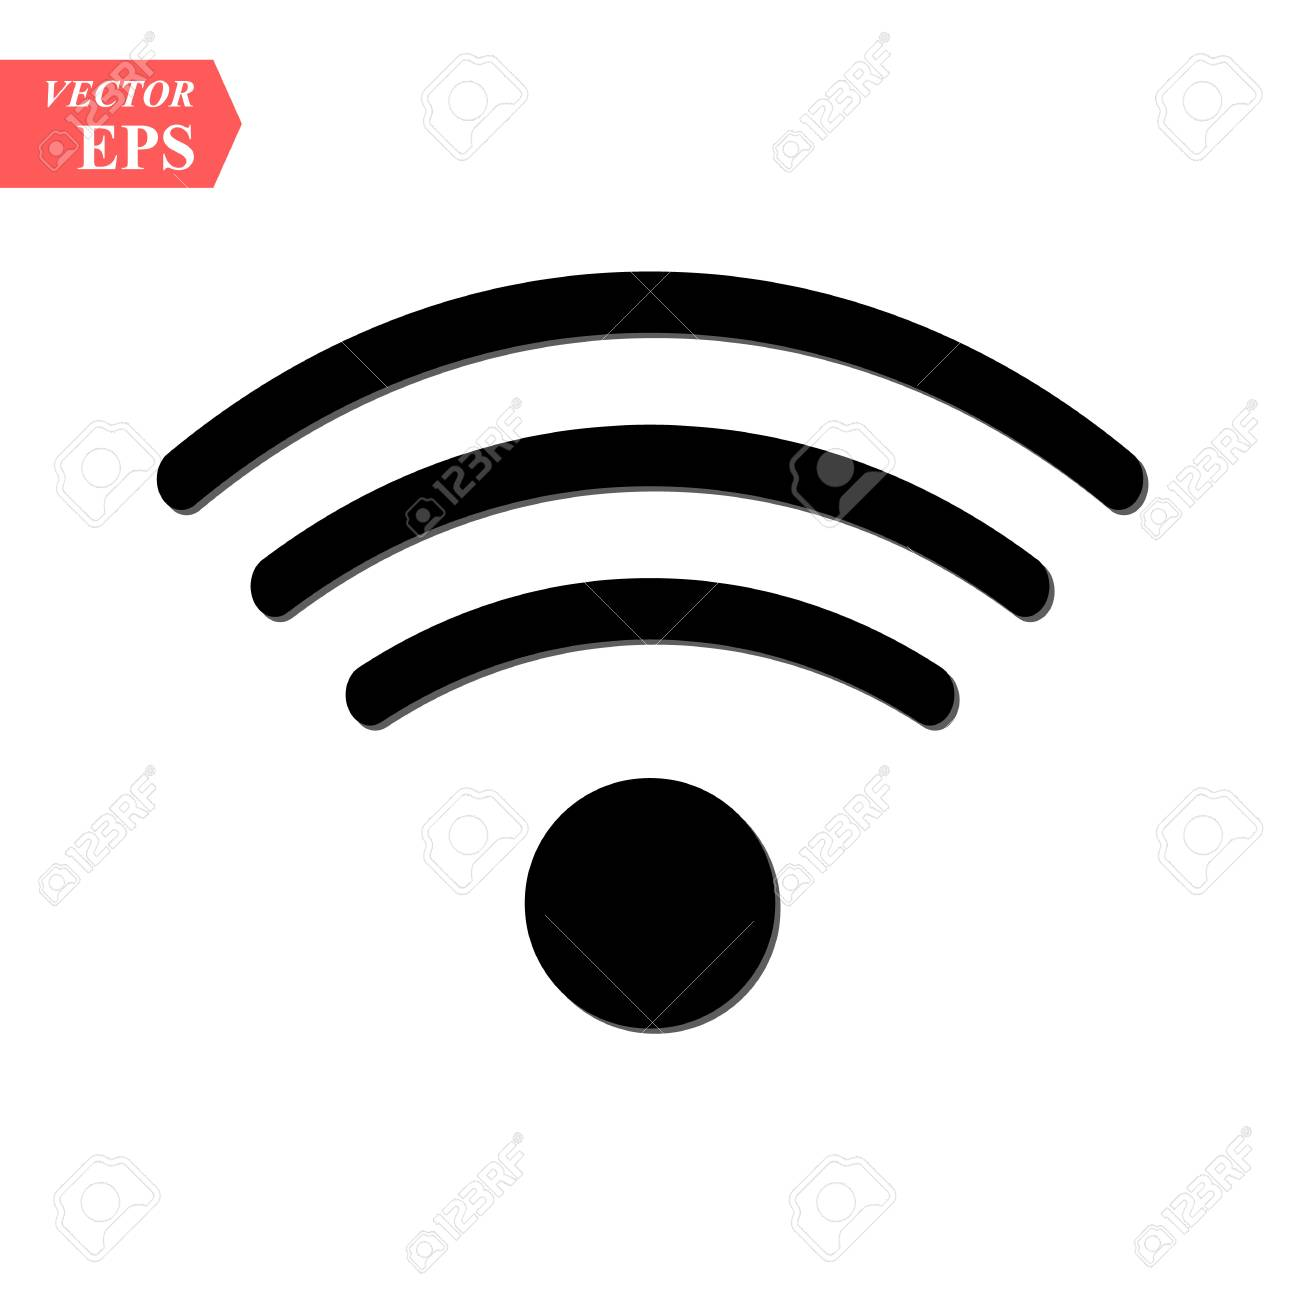 wireless and wifi icon or sign for remote internet access podcast